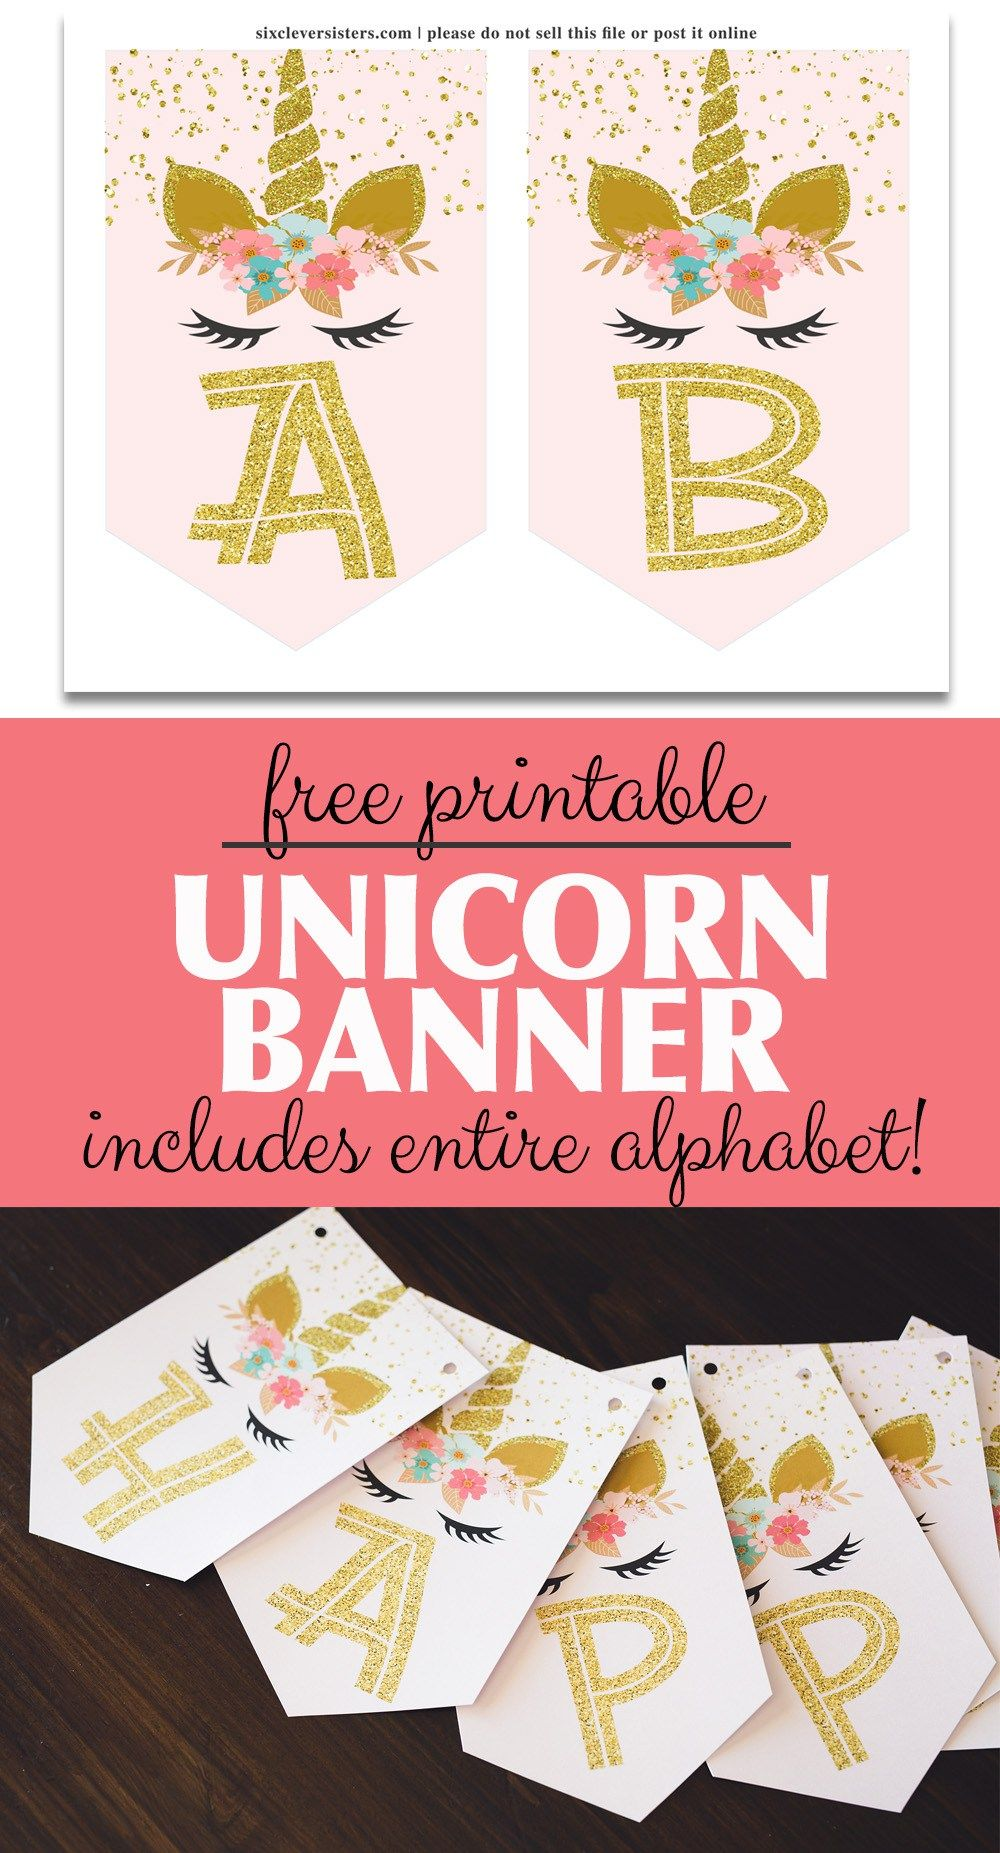 Unicorn Banner Free Printable! (pink & gold unicorn banner ...